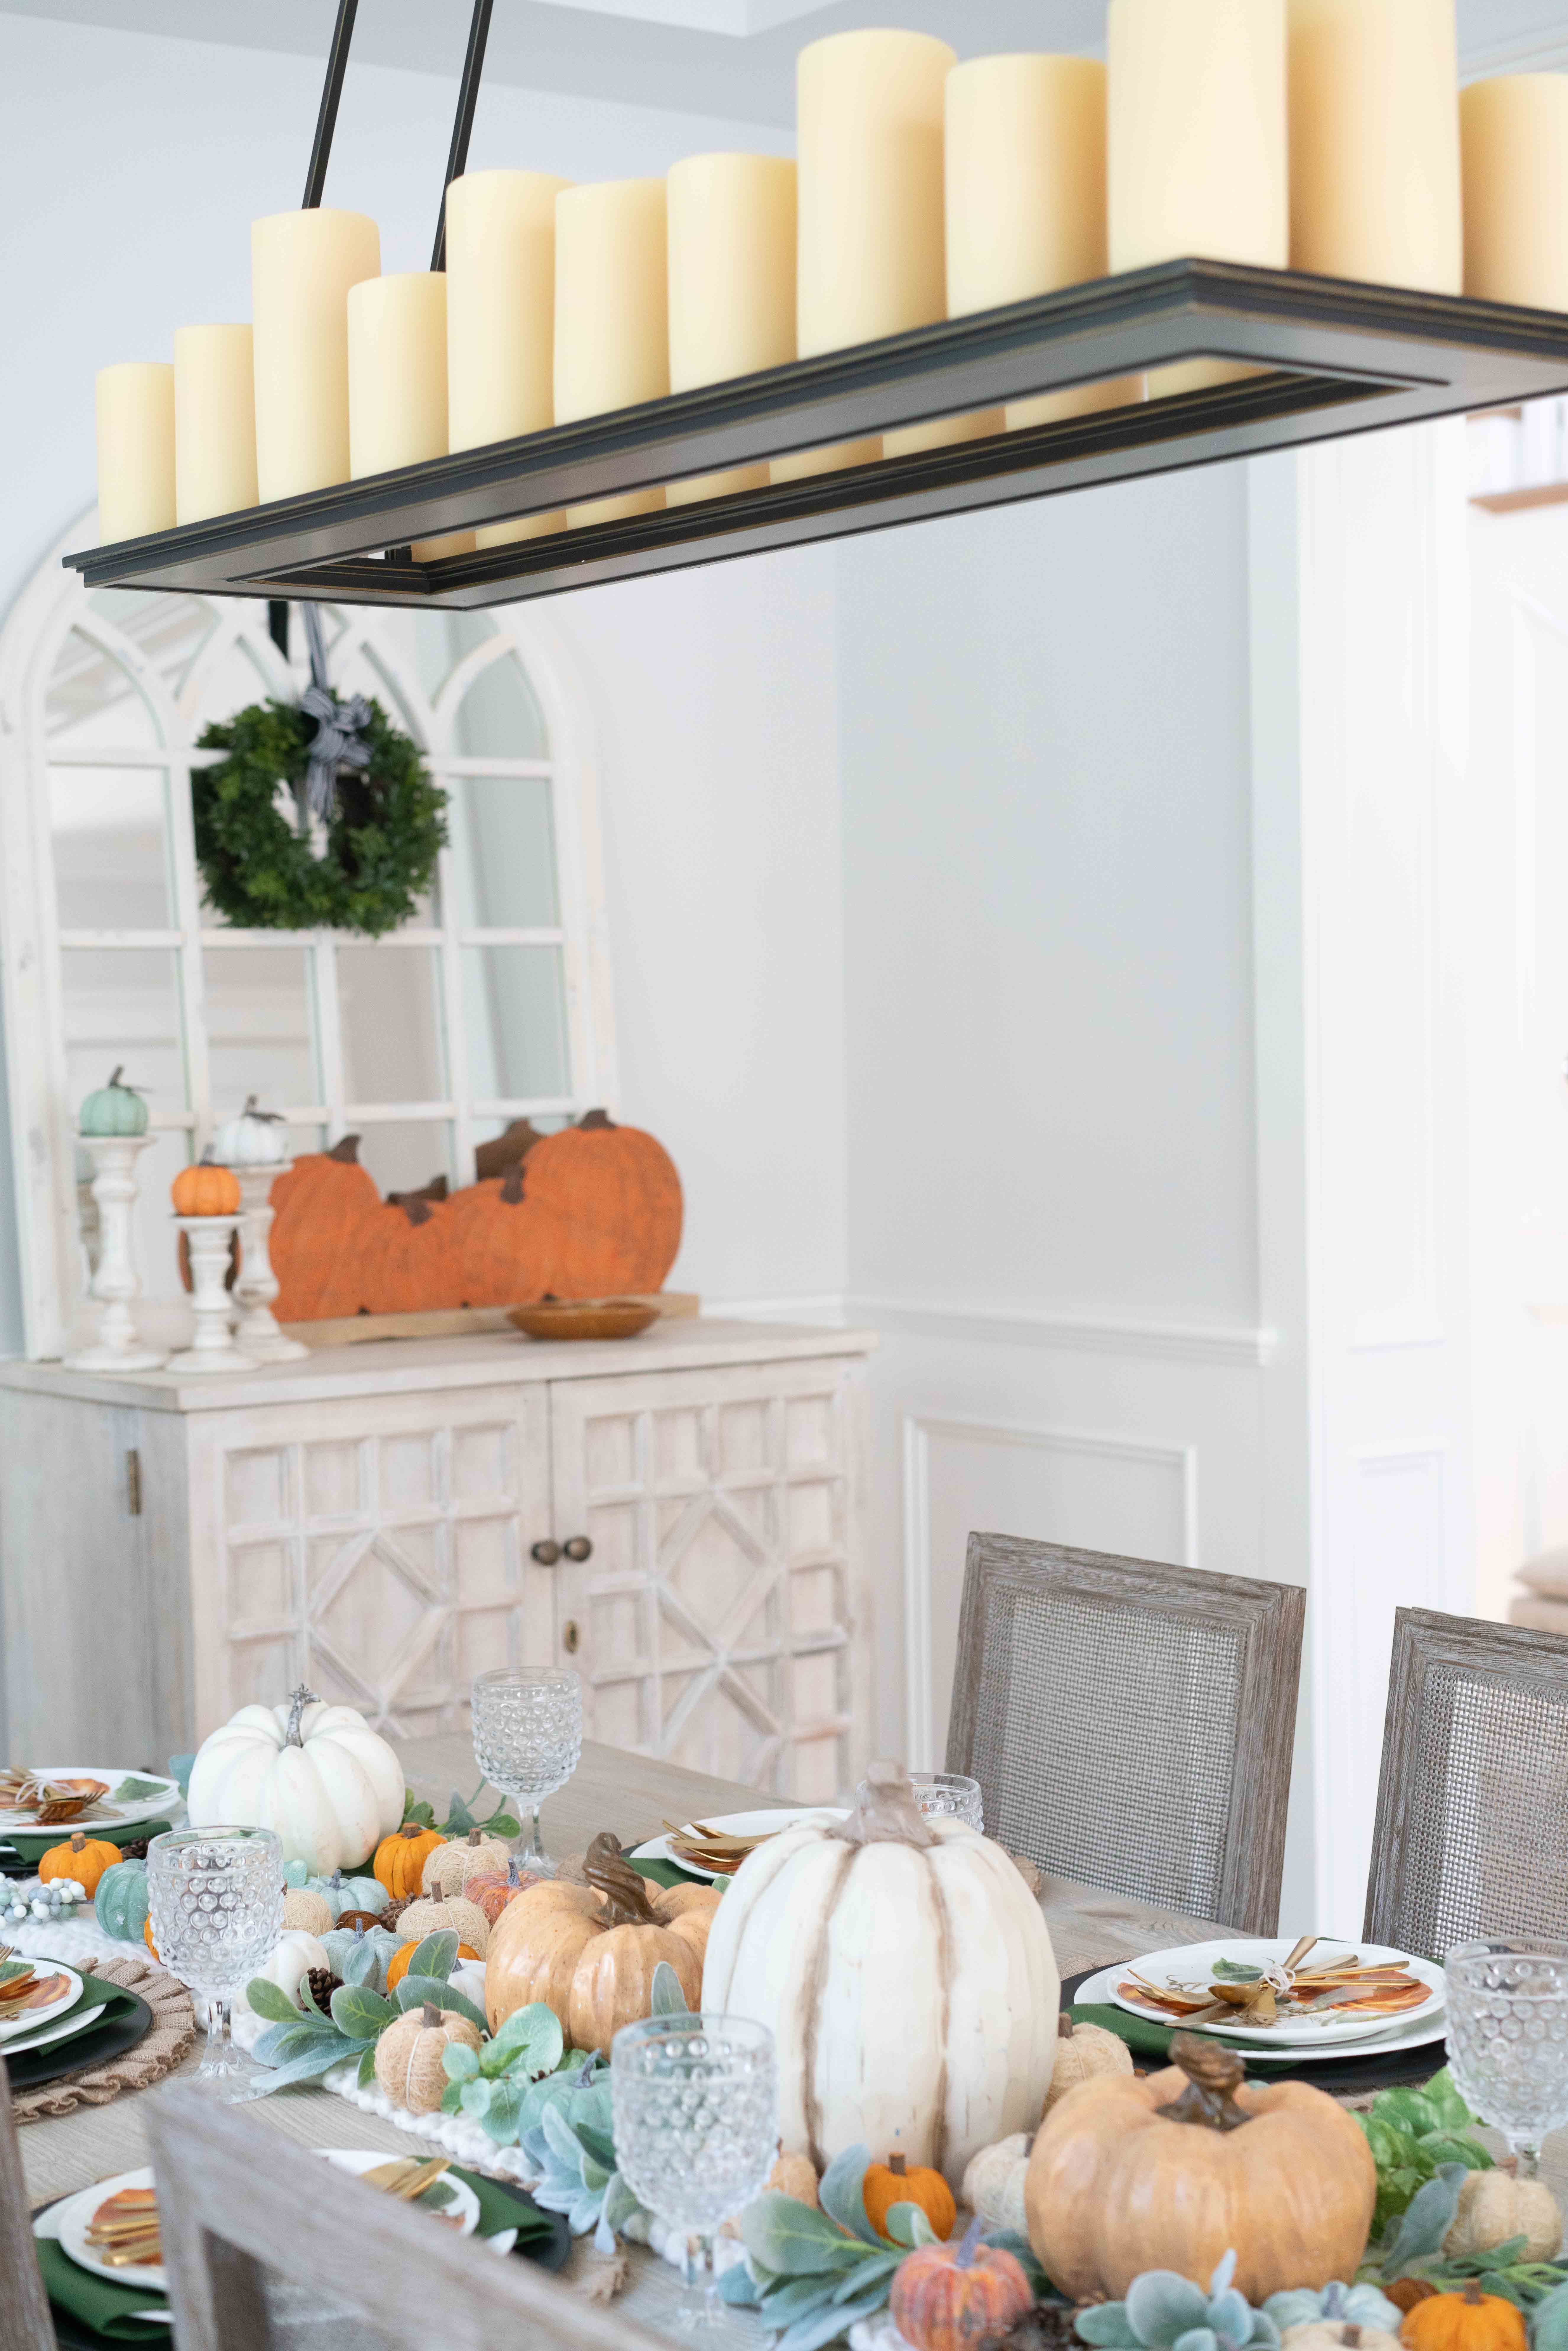 Dining Room Tour: Fall Decor Ideas To Make Your Home Stand Out